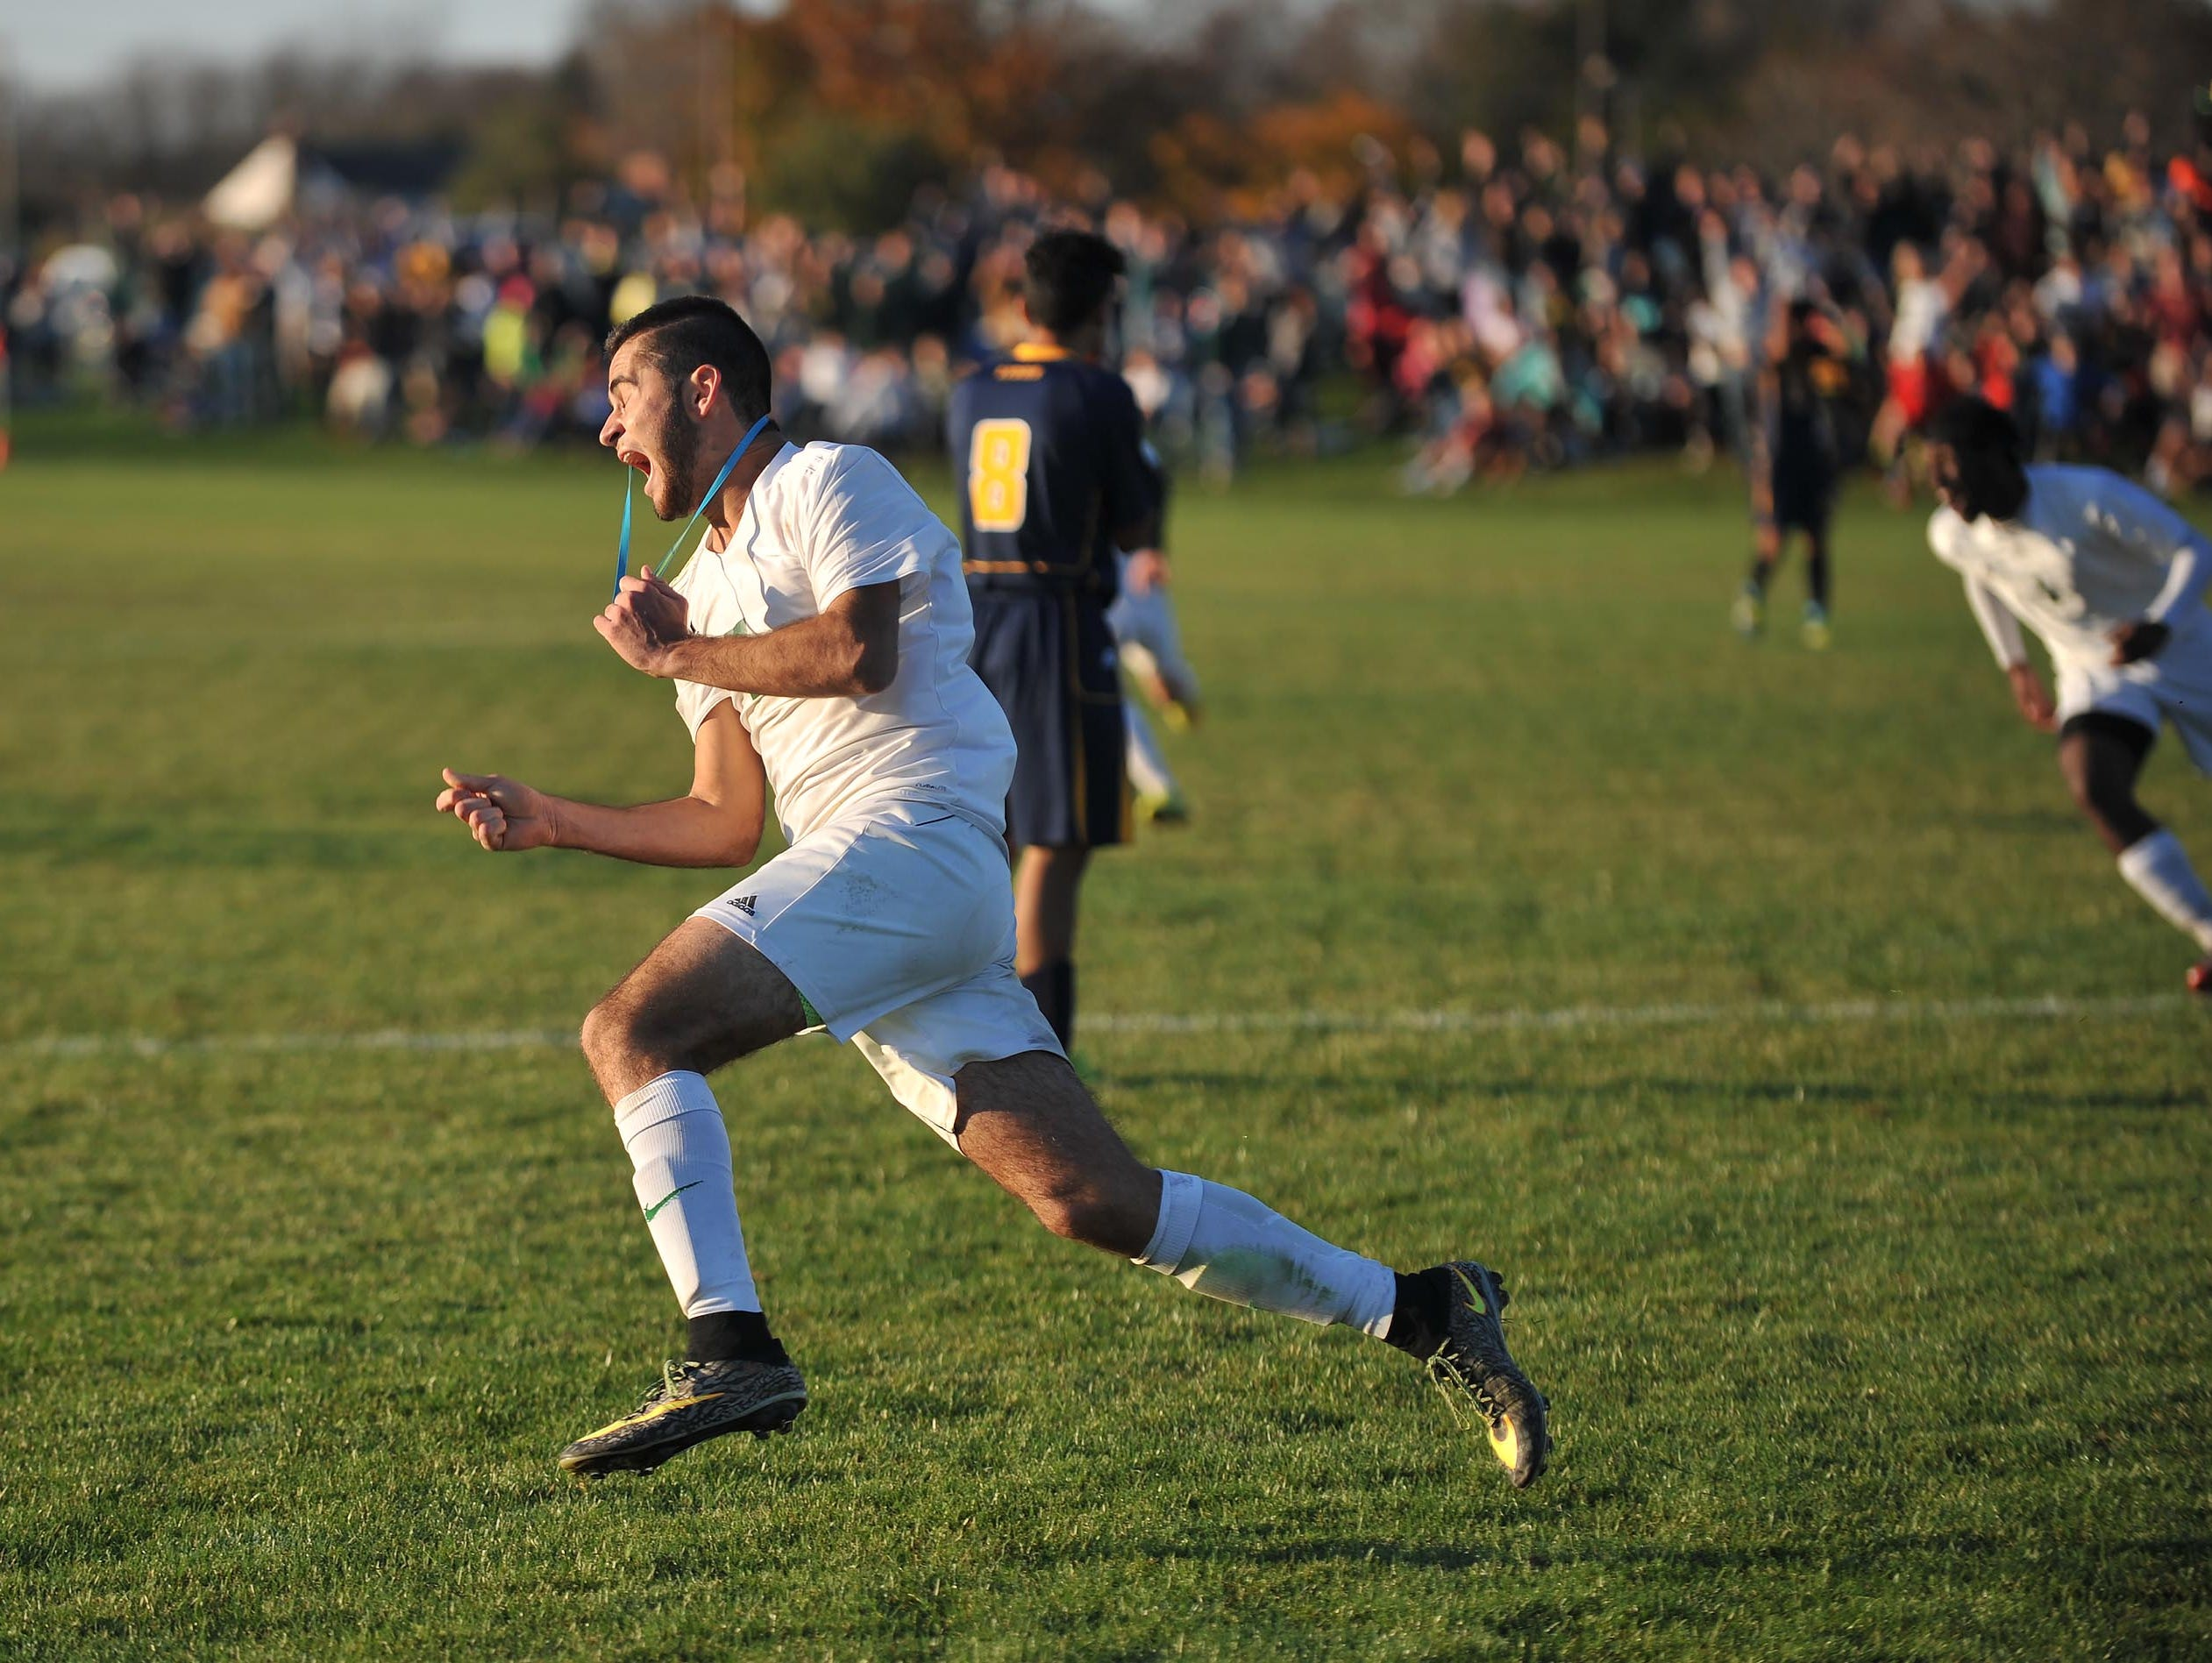 Schalick's Michael D'Orio (7) reacts after scoring the winning goal over Lindenwold, in overtime, Friday, Nov. 13 in Pittsgrove.